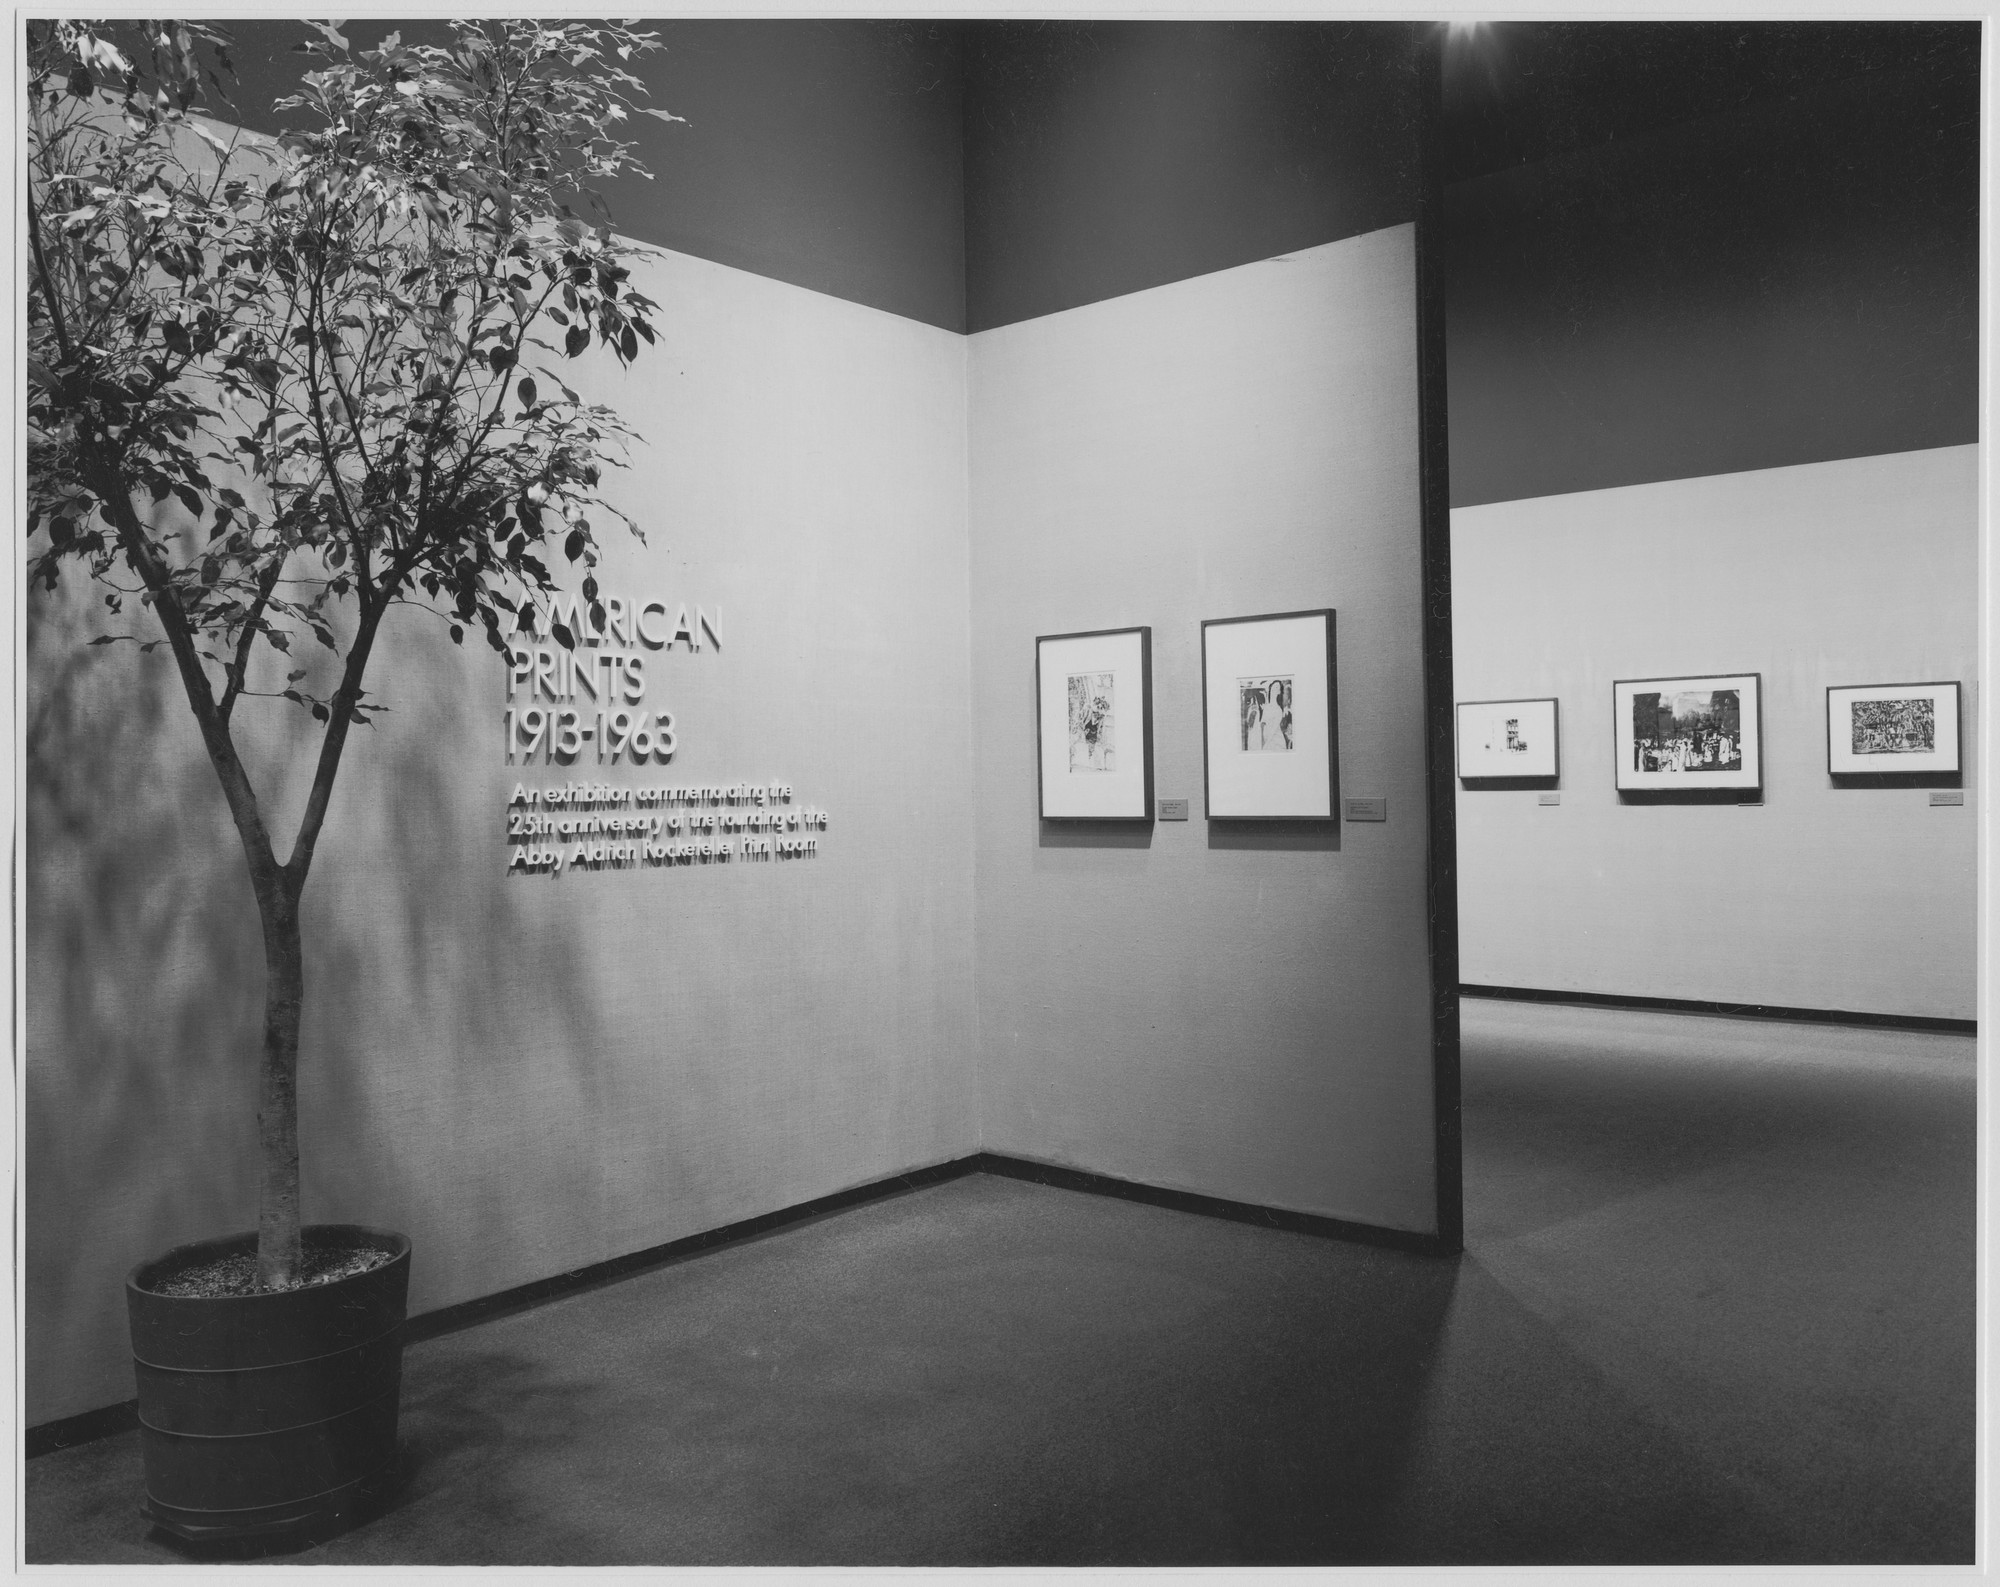 "Installation view of the exhibition, ""American Prints: 1913-1963."" December 3, 1974–March 3, 1975. Photographic Archive. The Museum of Modern Art Archives, New York. IN1082a.1. Photograph by Katherine Keller."